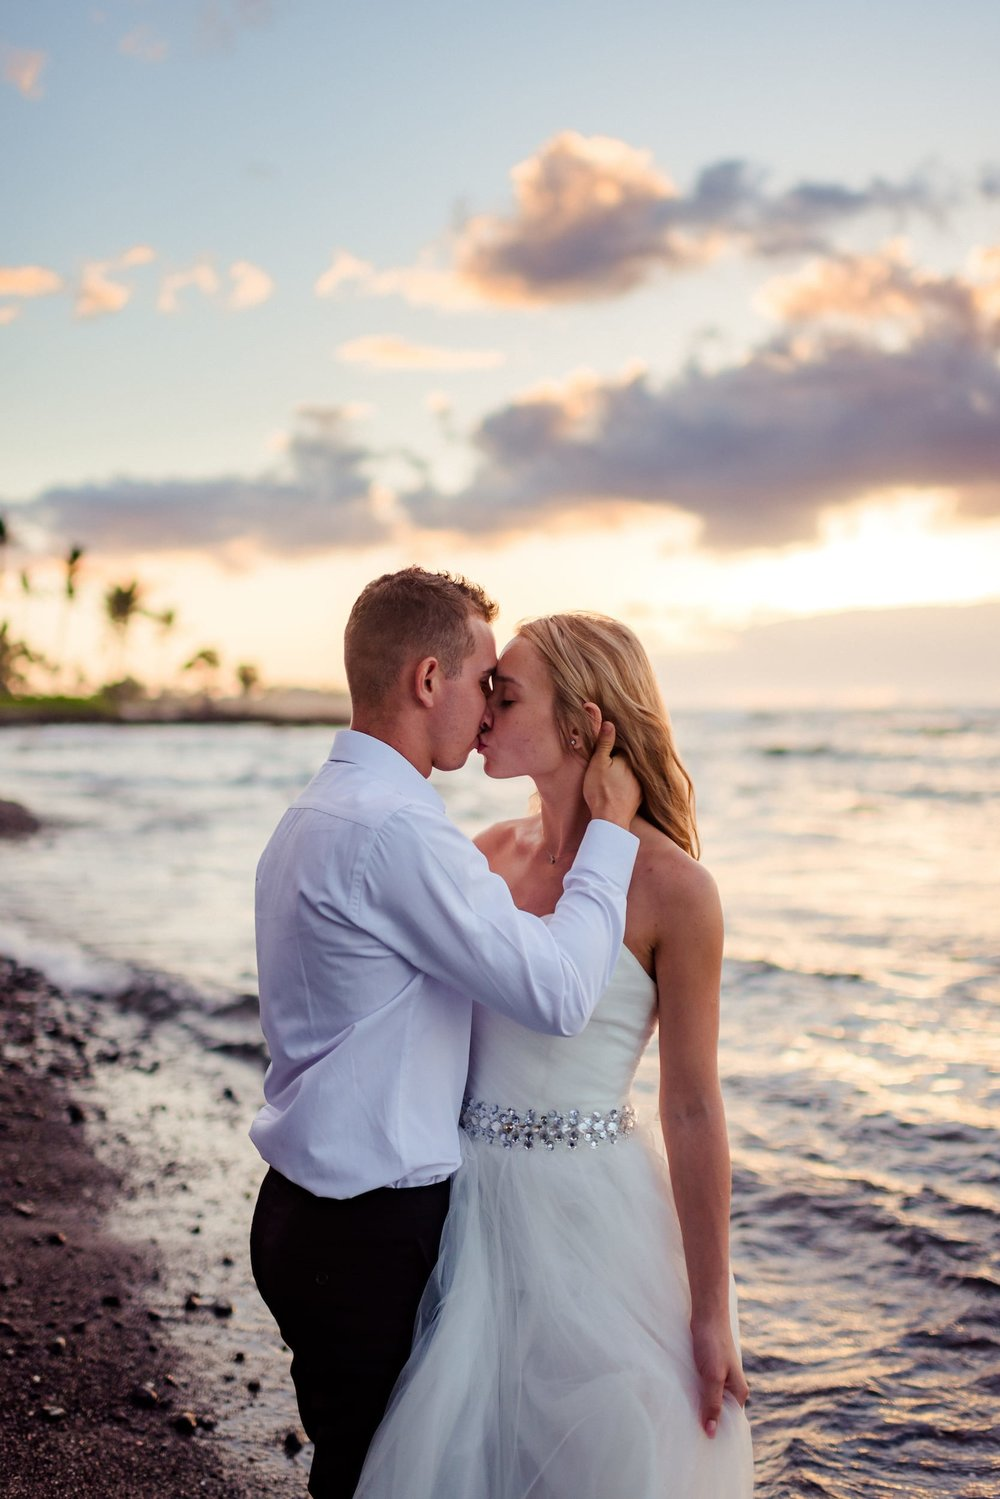 Big-Island-Elopement-Private-Wedding-Hawaii-Beach-18.jpg